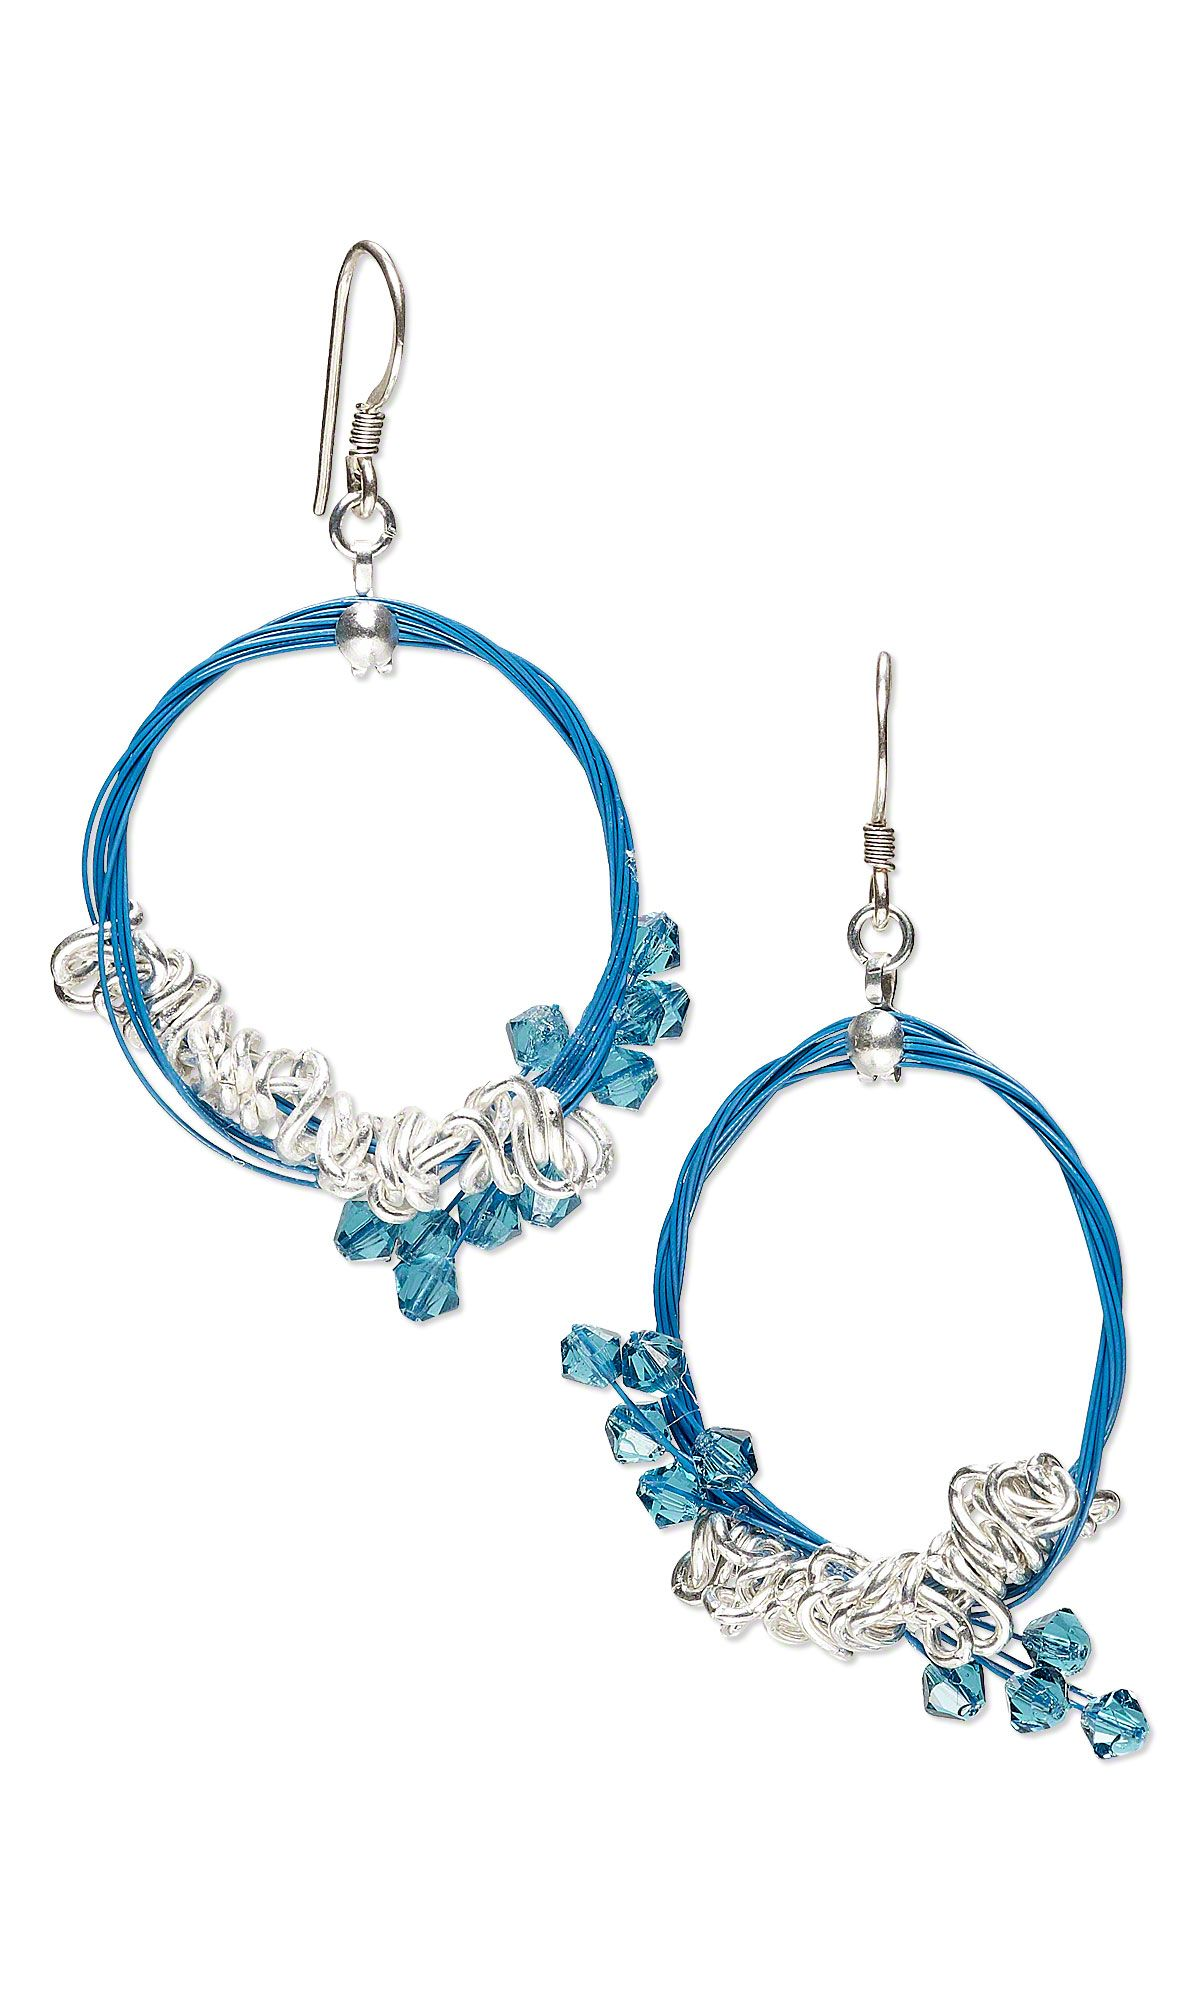 Jewelry Design - Earrings with Swarovski Crystal Beads, Silver ...